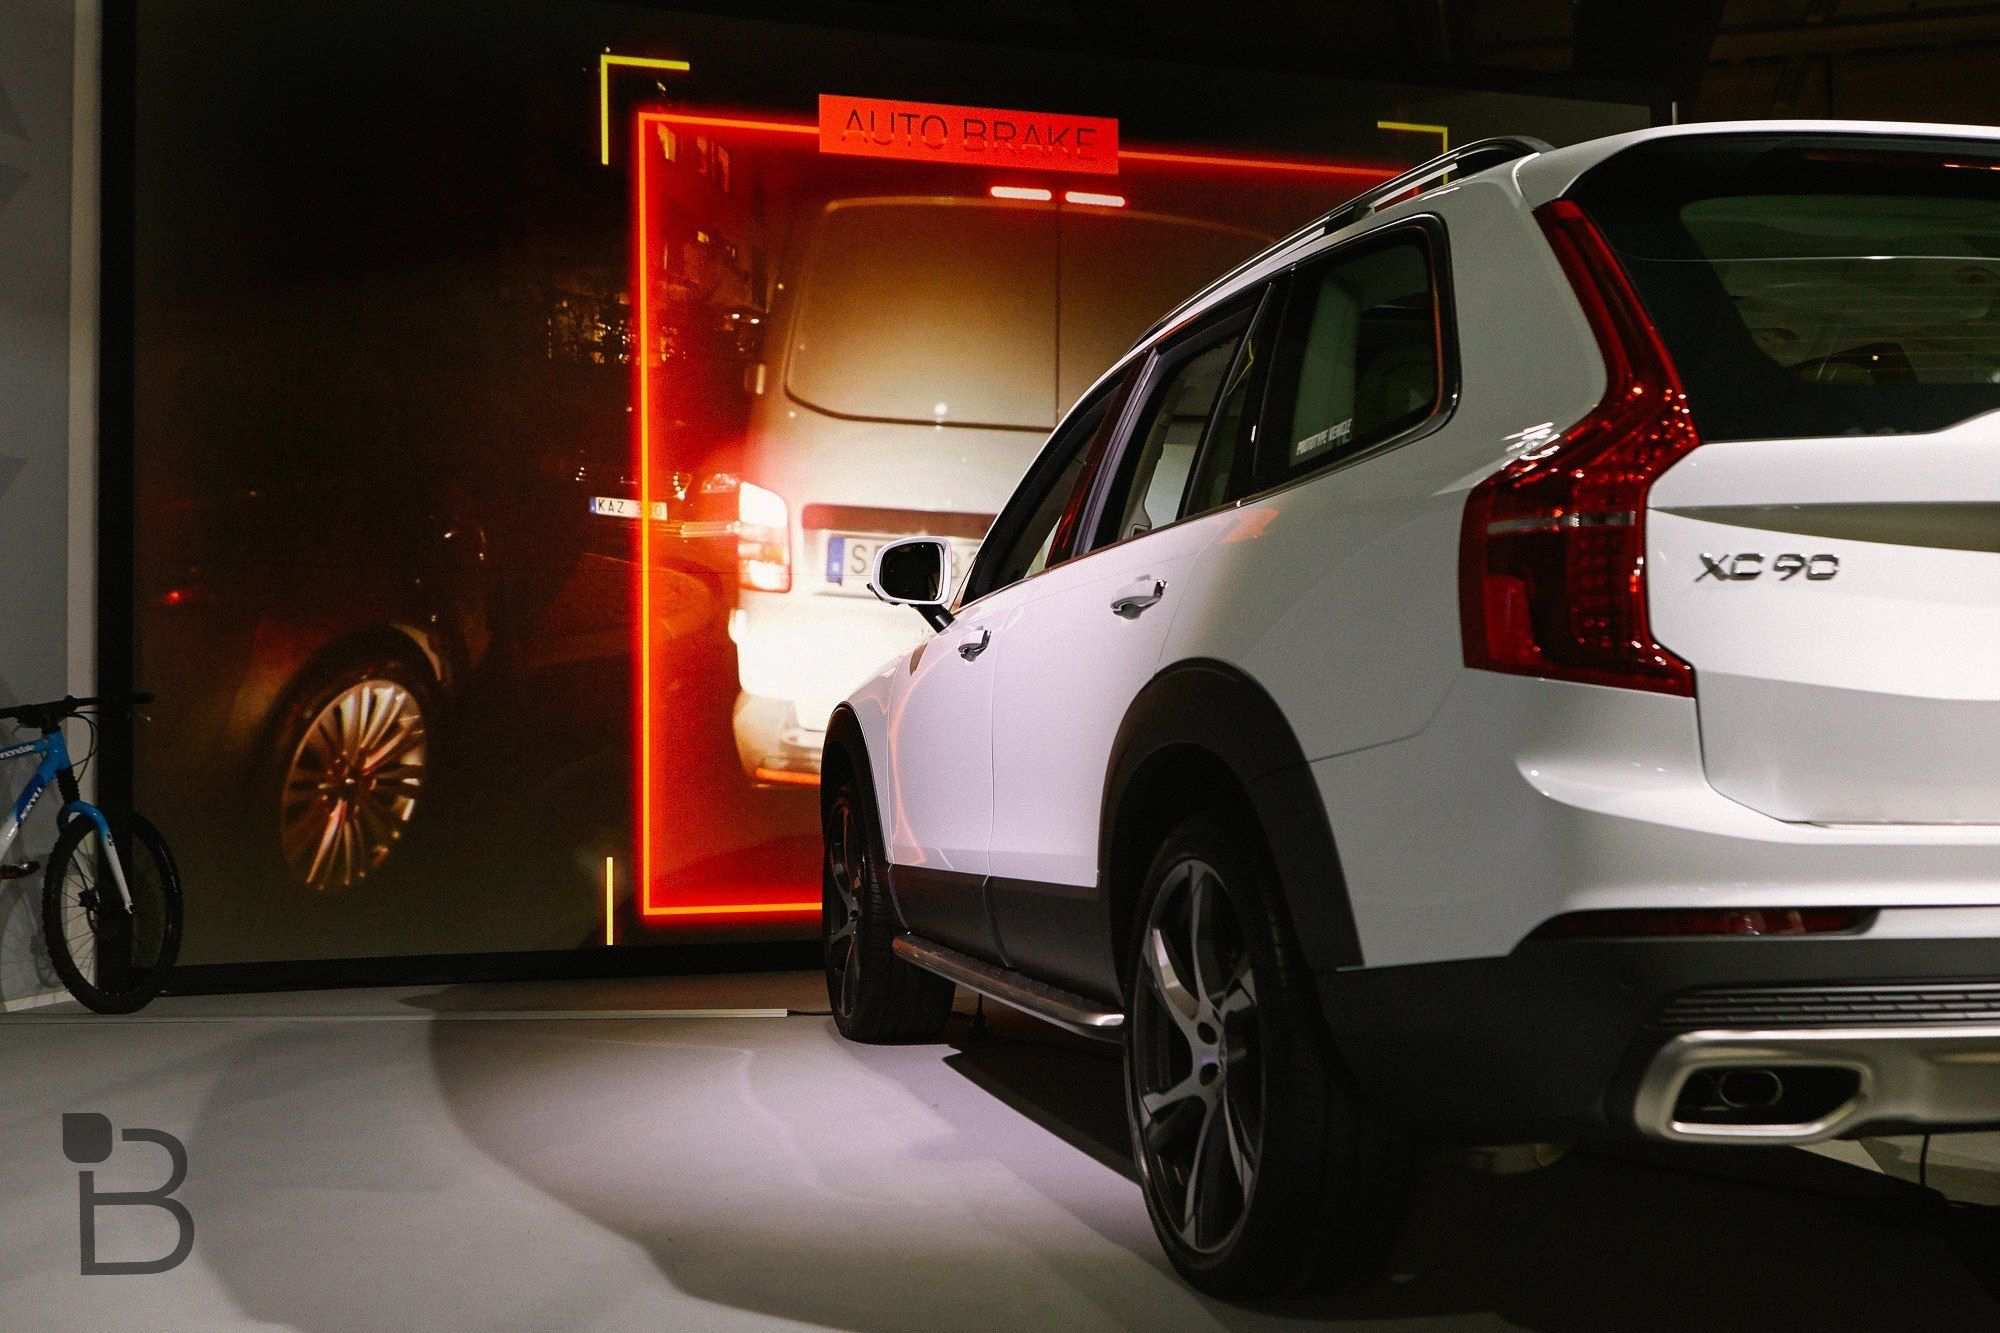 94 Great 2020 Volvo Xc90 New Concept Exterior and Interior by 2020 Volvo Xc90 New Concept